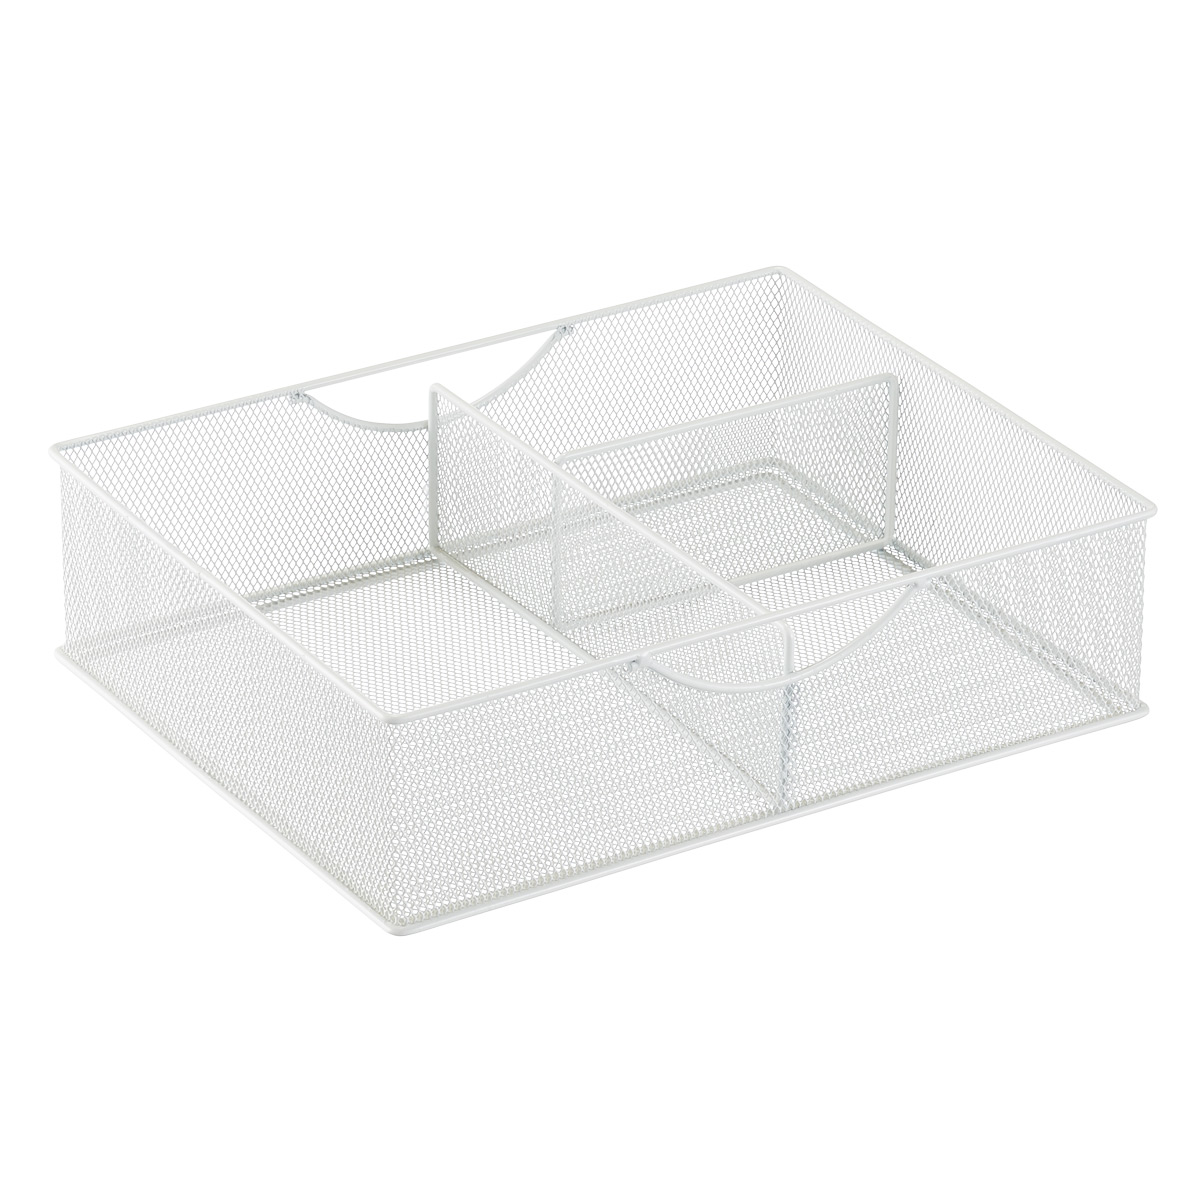 Mesh Food Storage Organizer